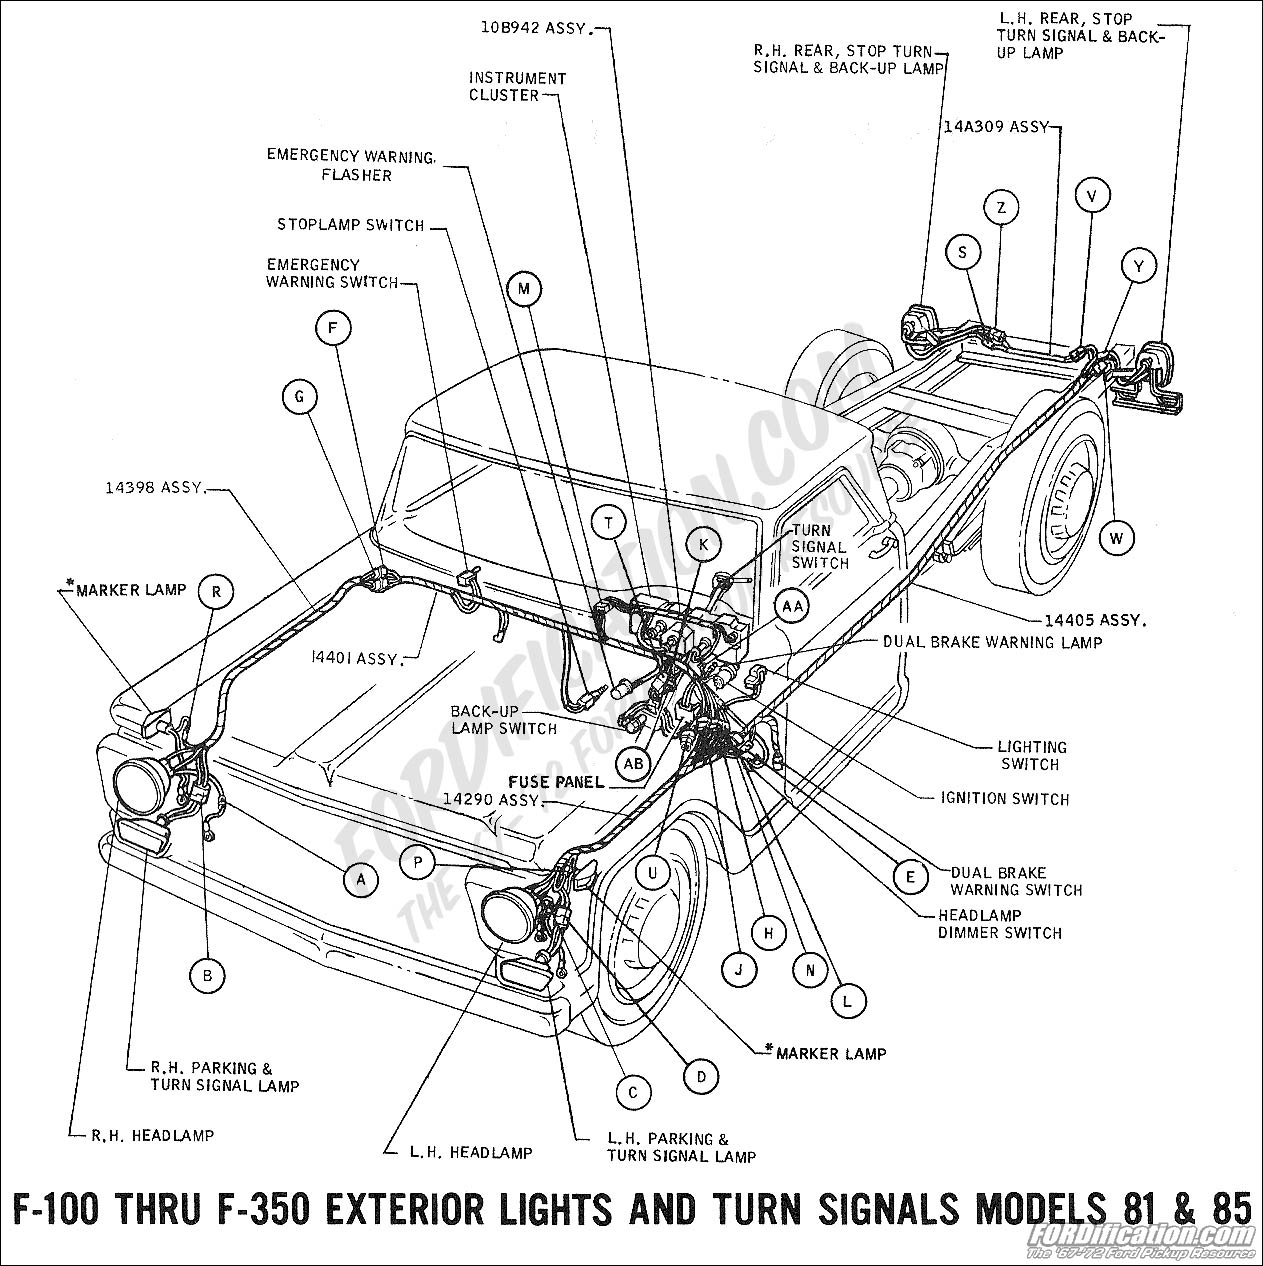 hight resolution of 1969 f 100 thru f 350 exterior lights and turn signals